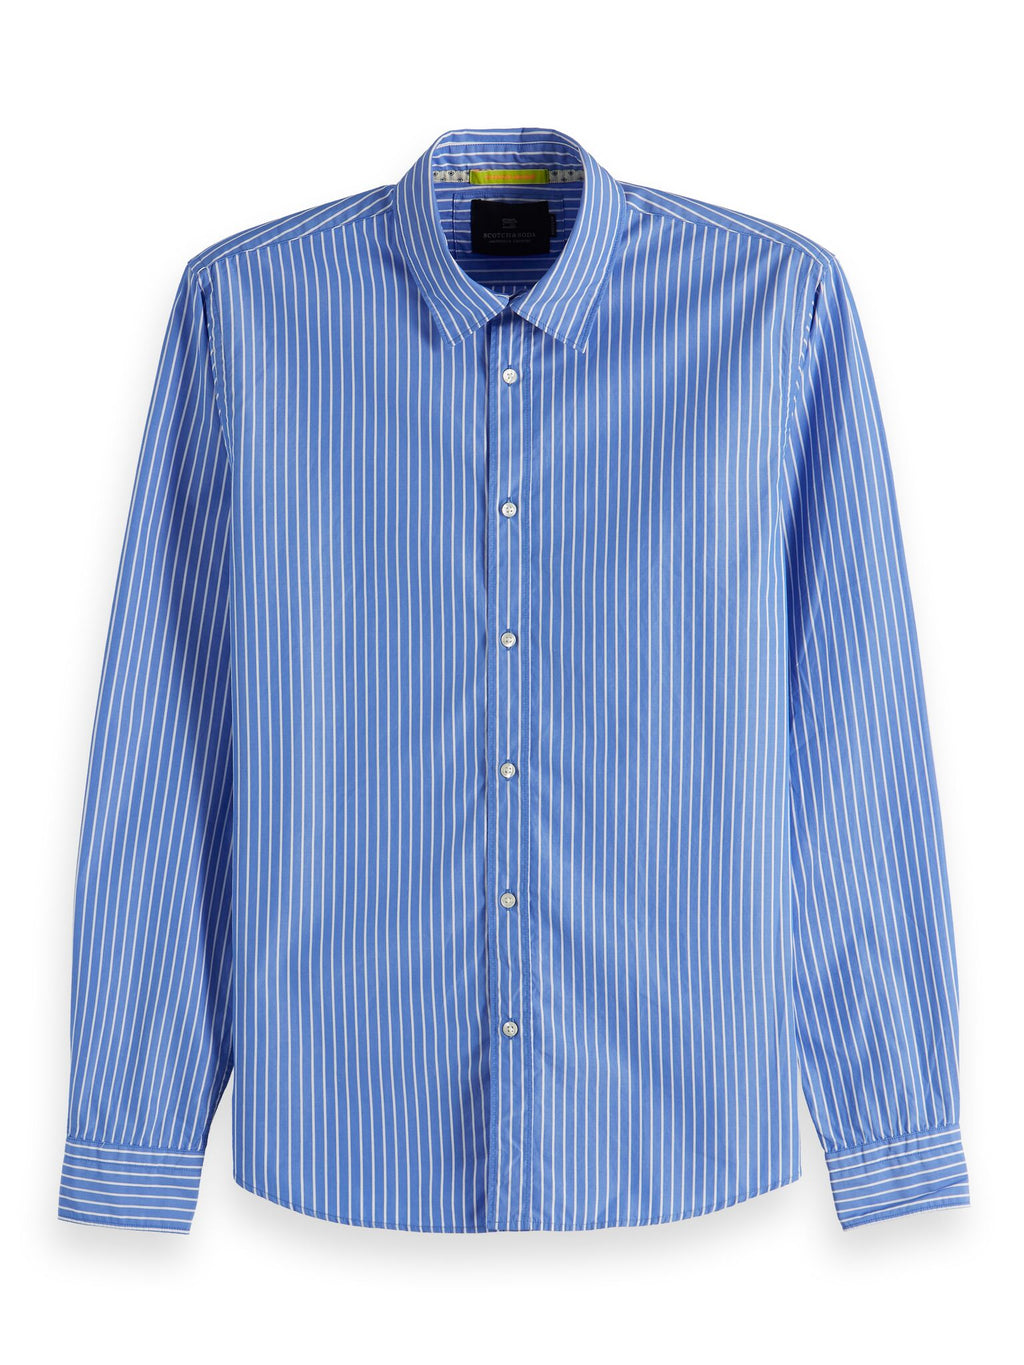 Scotch & Soda Classic Blue shirt with fine white stripes